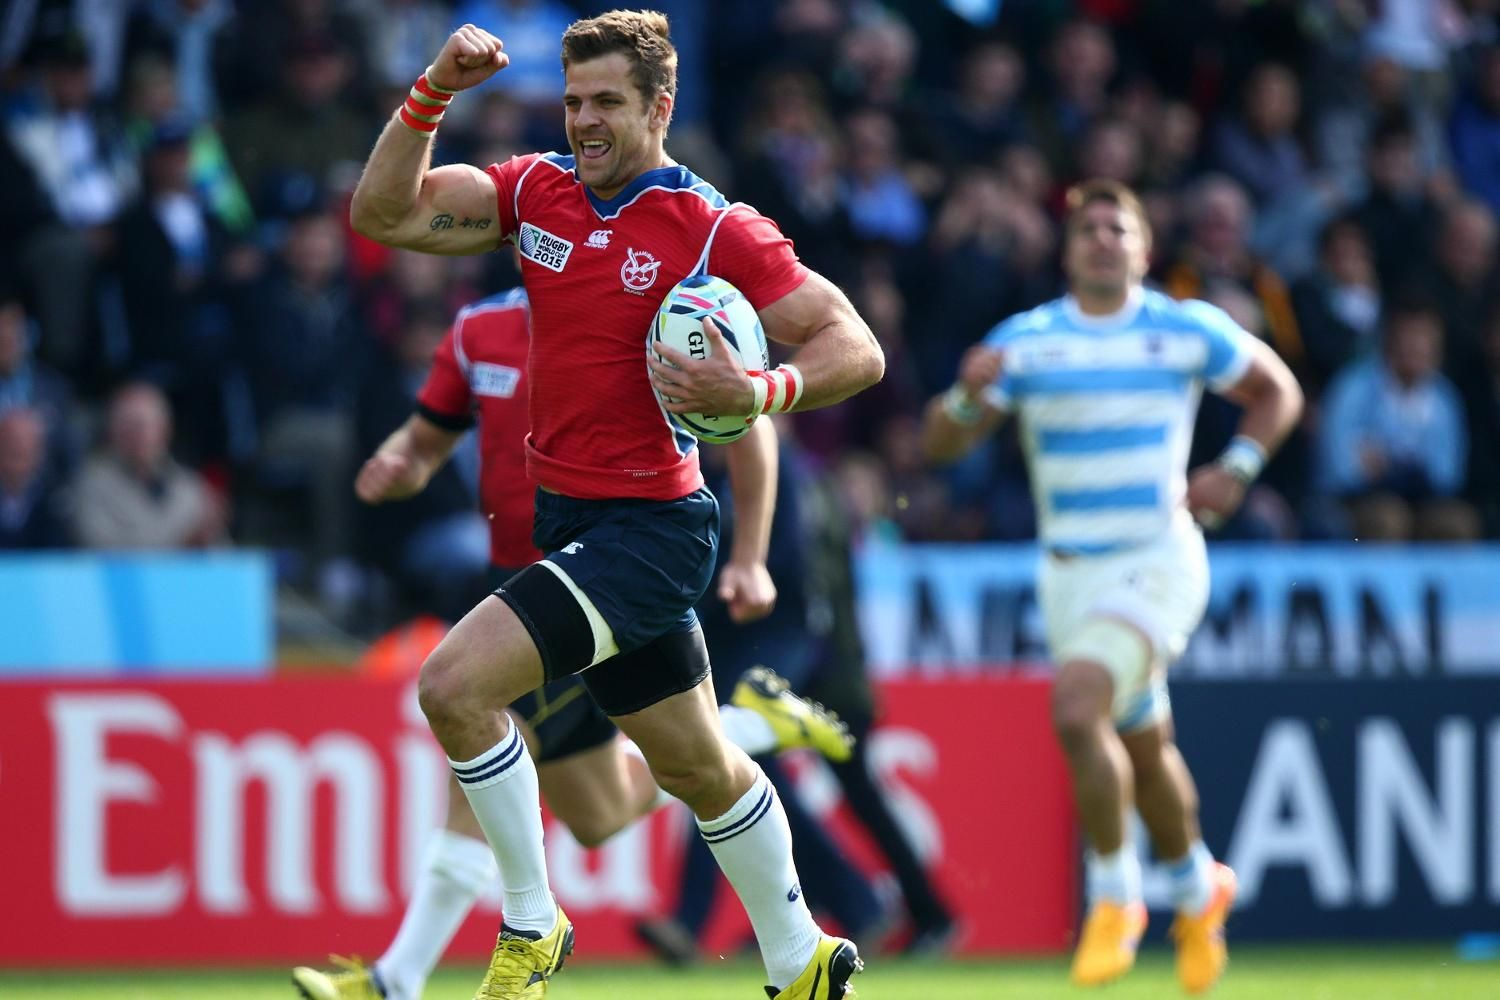 Rugby World Cup 2015 Match Centre Match 37 Rugby